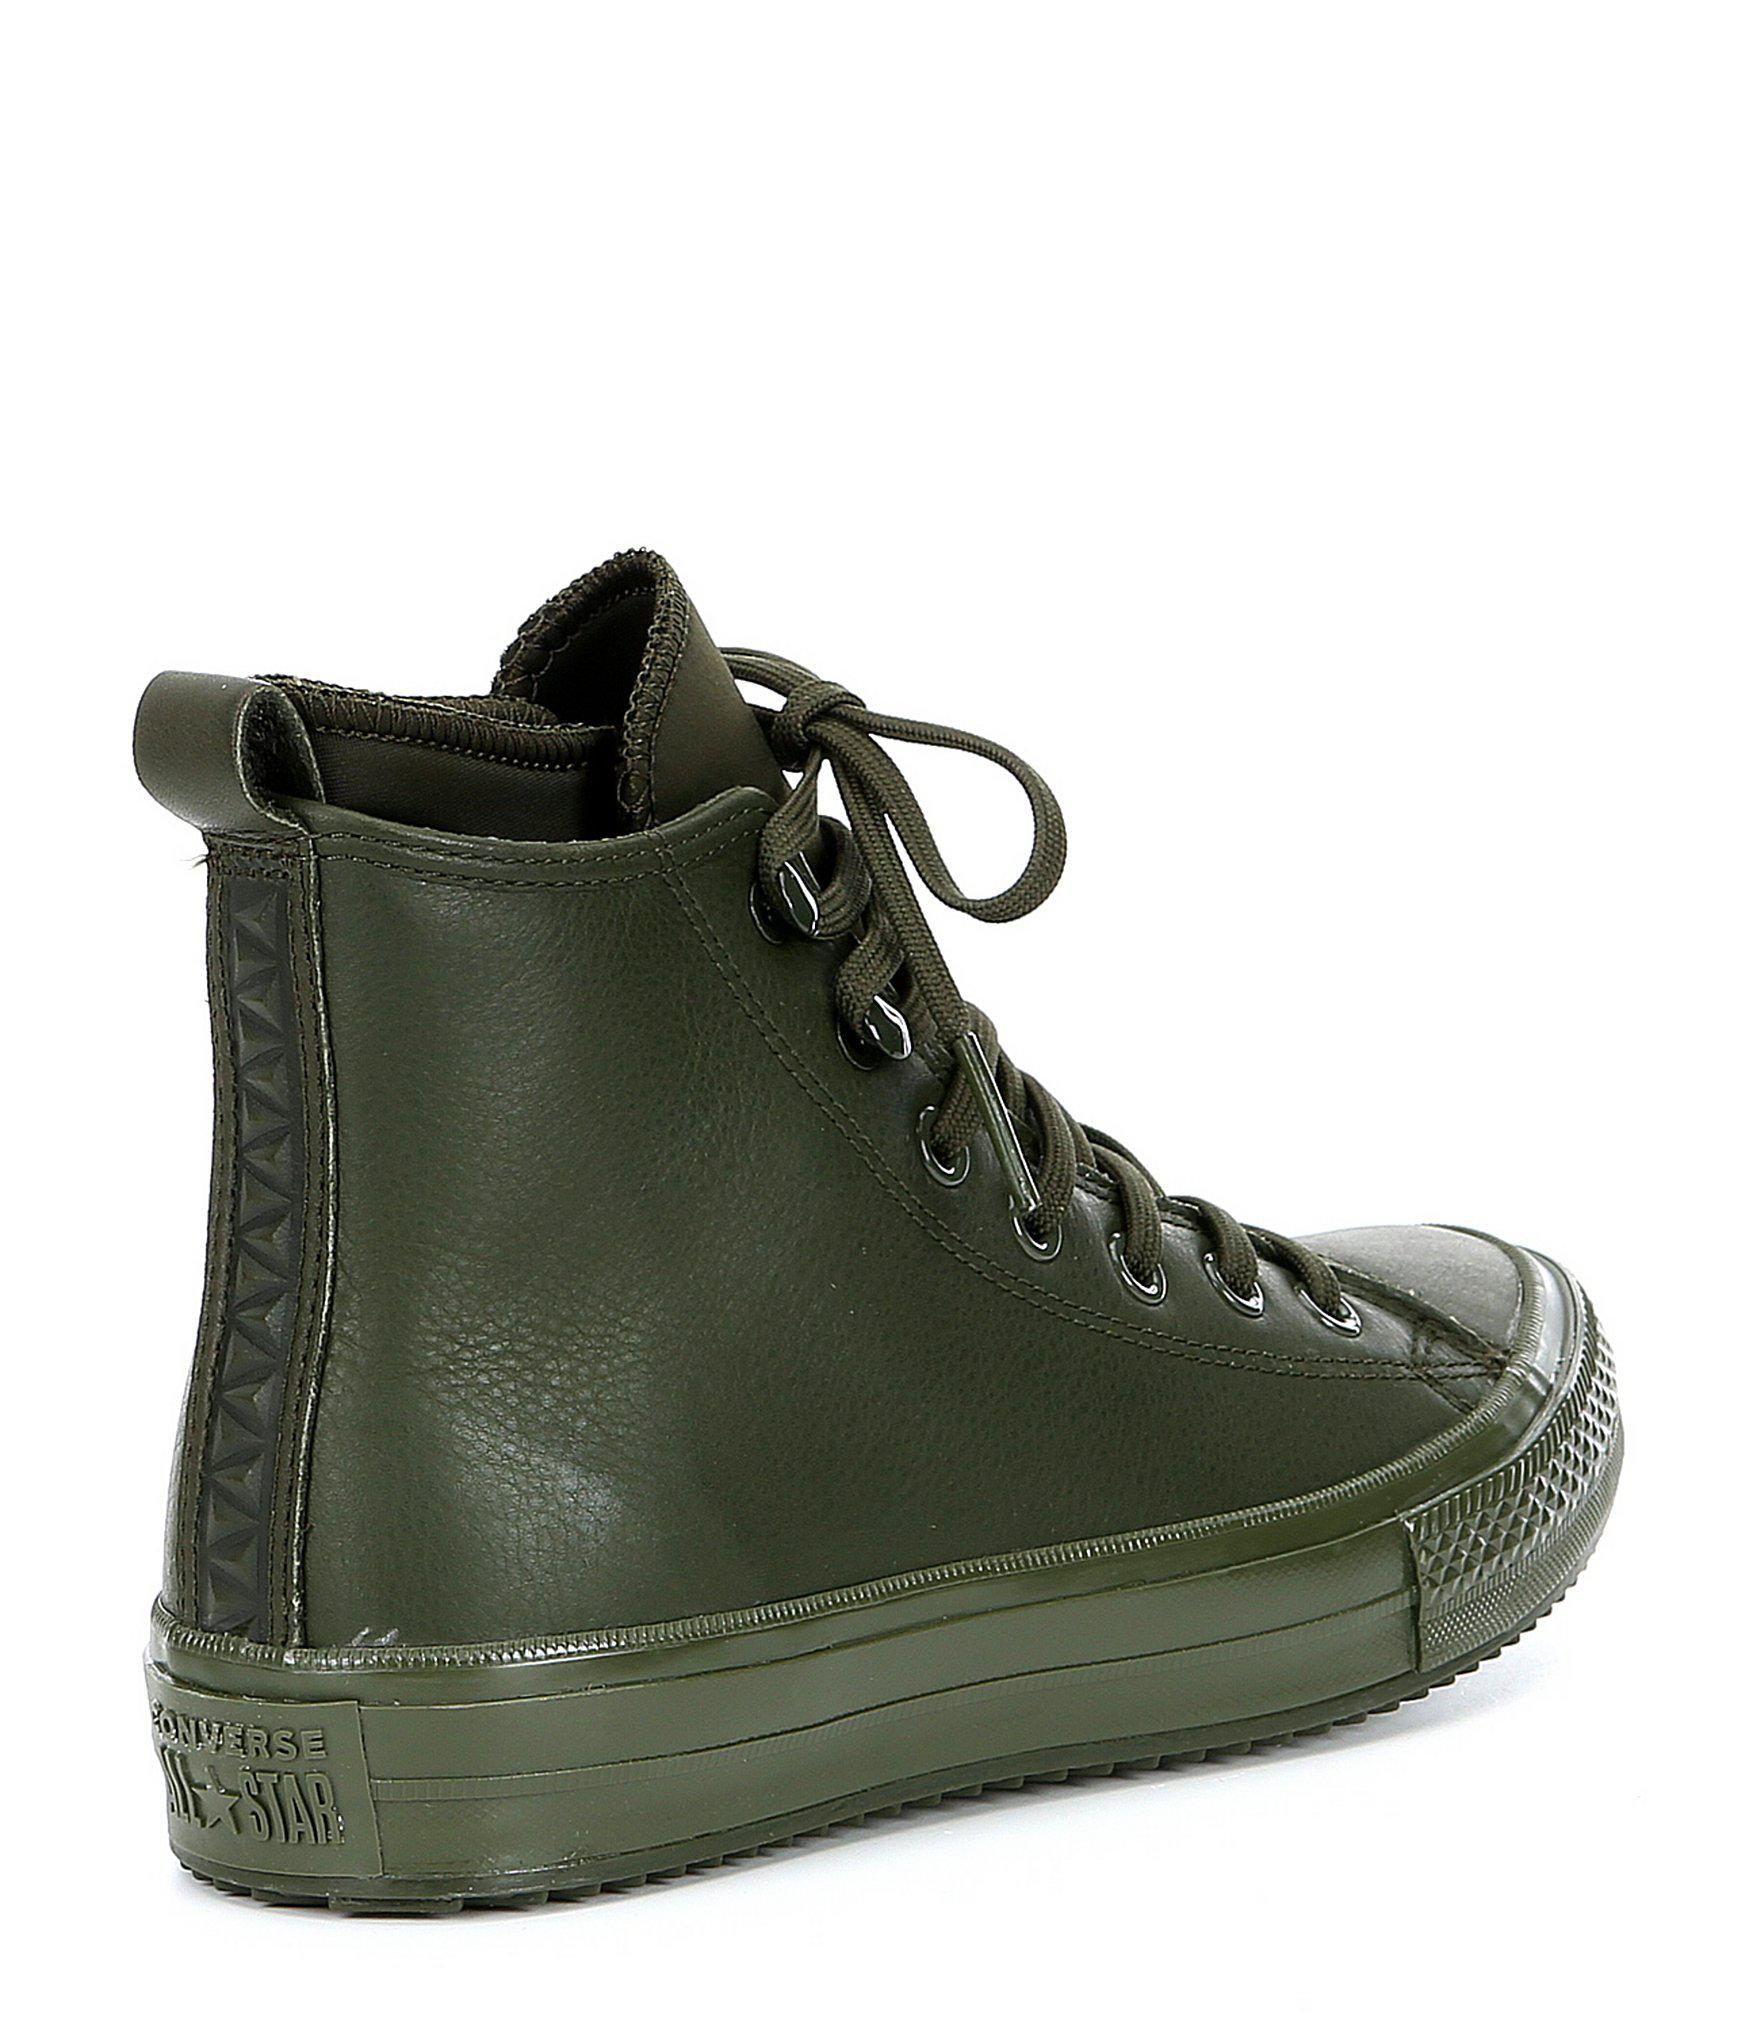 3e8f6a84c51 Lyst - Converse Chuck Taylor All Star Waterproof Boot Hi Sneakers in ...